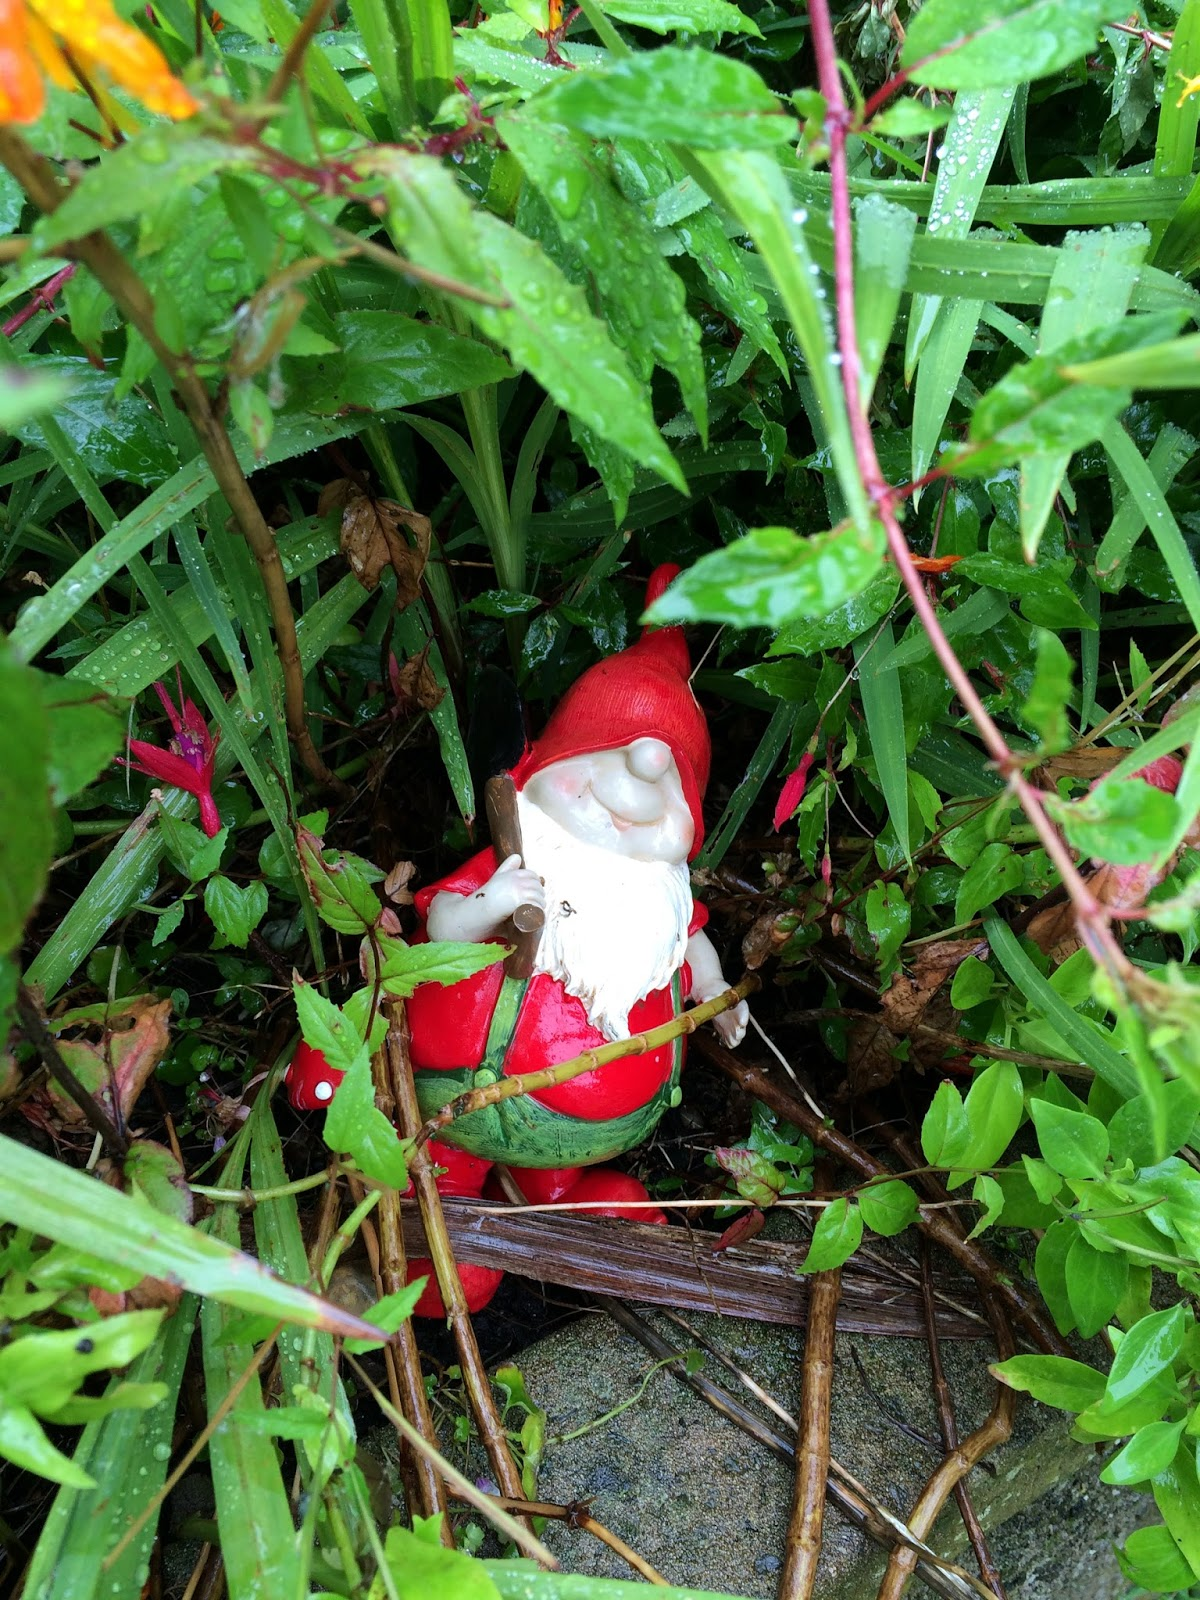 garden clean up - a garden gnome hidden under foliage